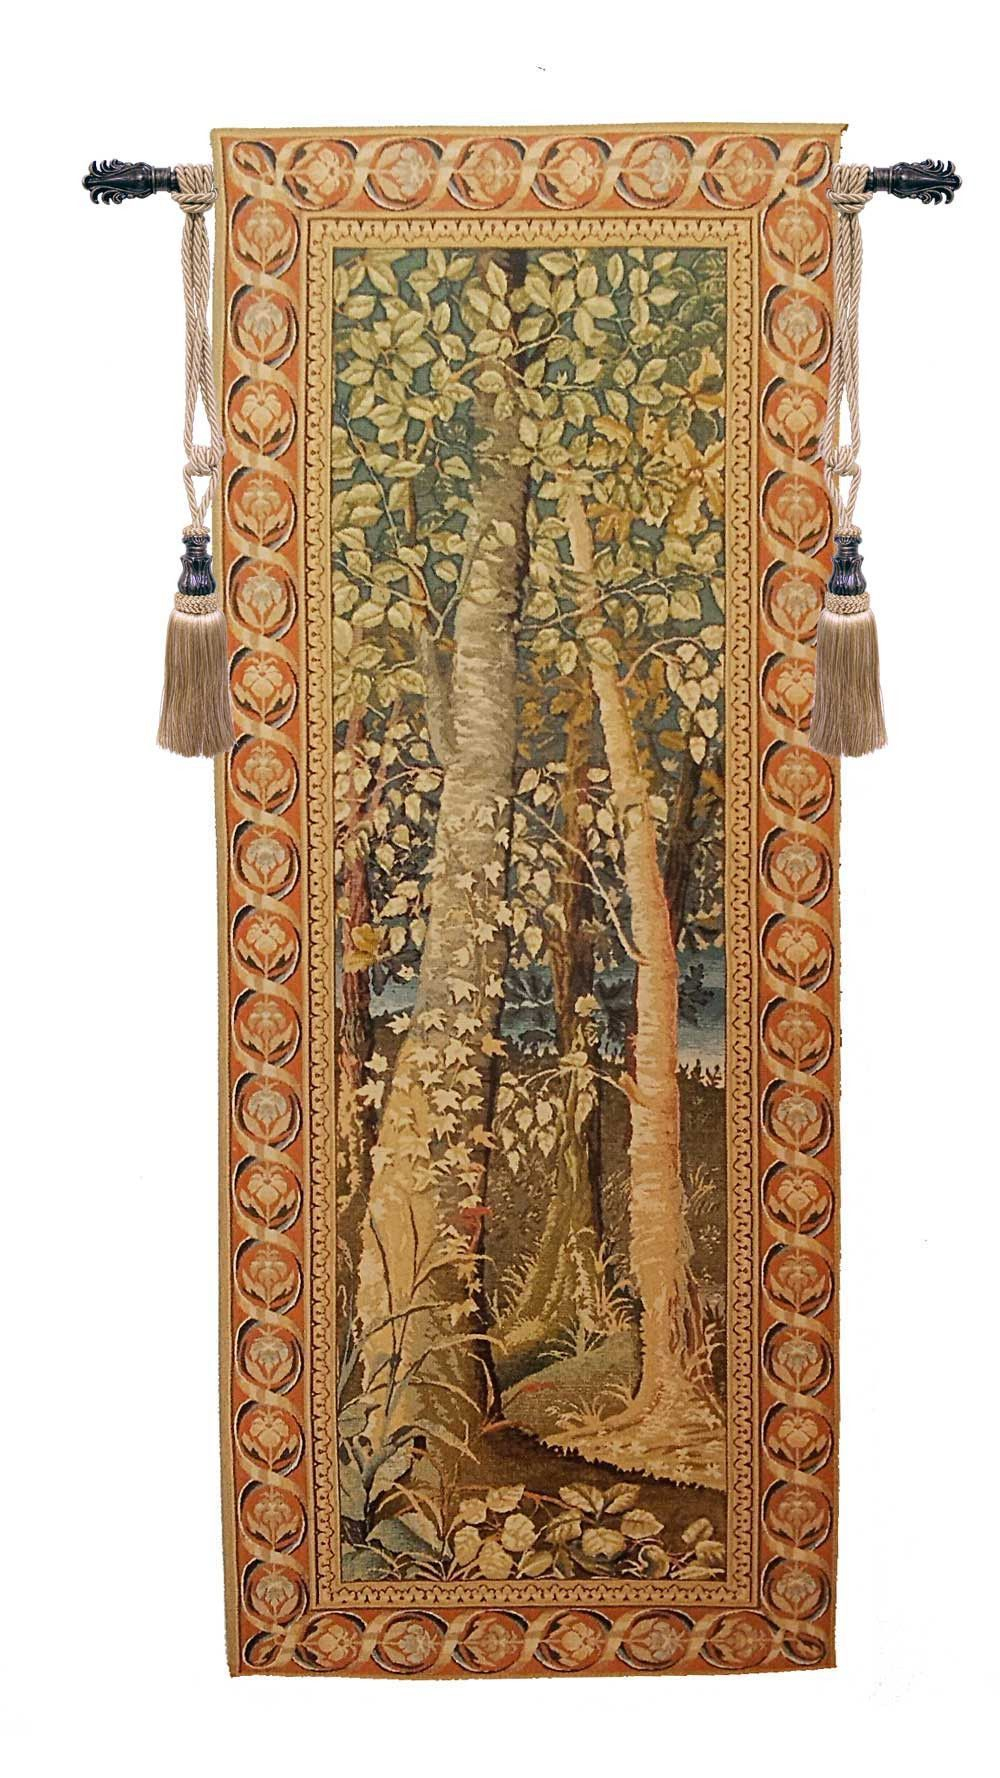 Pin On Tapestries And Wall Hangings In Current Blended Fabric Mucha Spring European Wall Hangings (View 3 of 20)